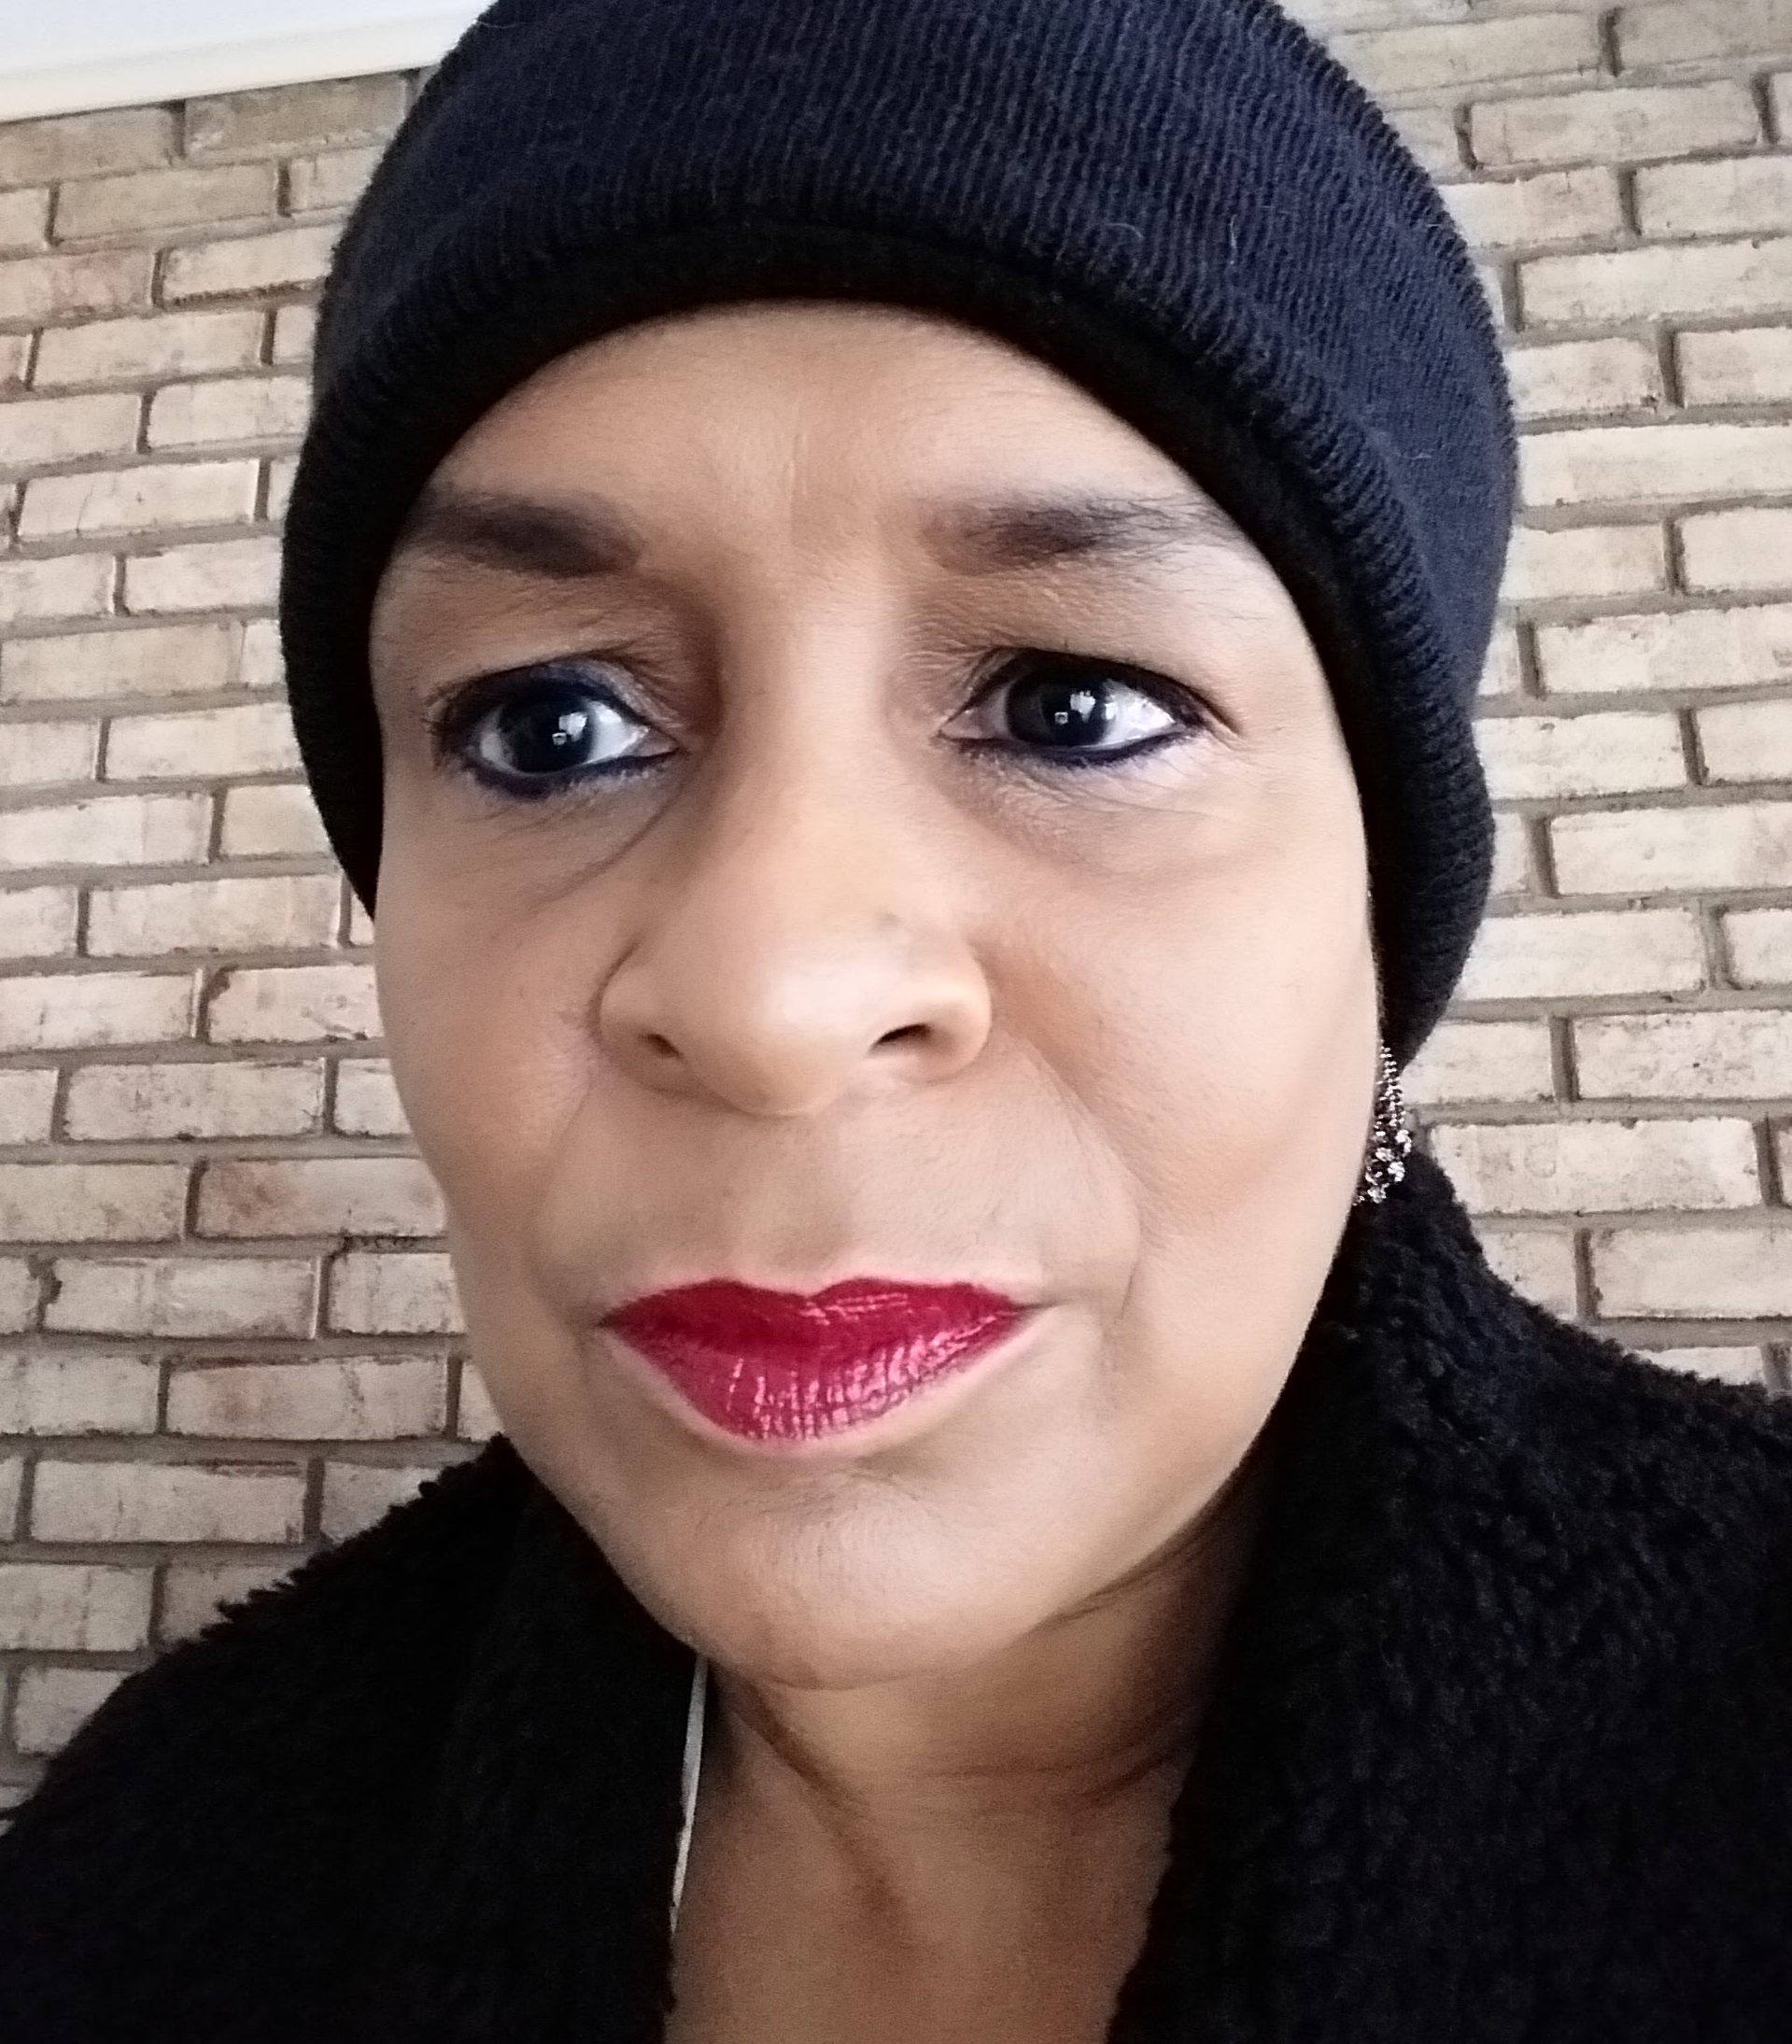 Talk about misunderstanding. This featured image is a selfie of me weaing a black knit headband and furry sweater. I'm also wearing bright red lipstick and to many people I don't look blind.